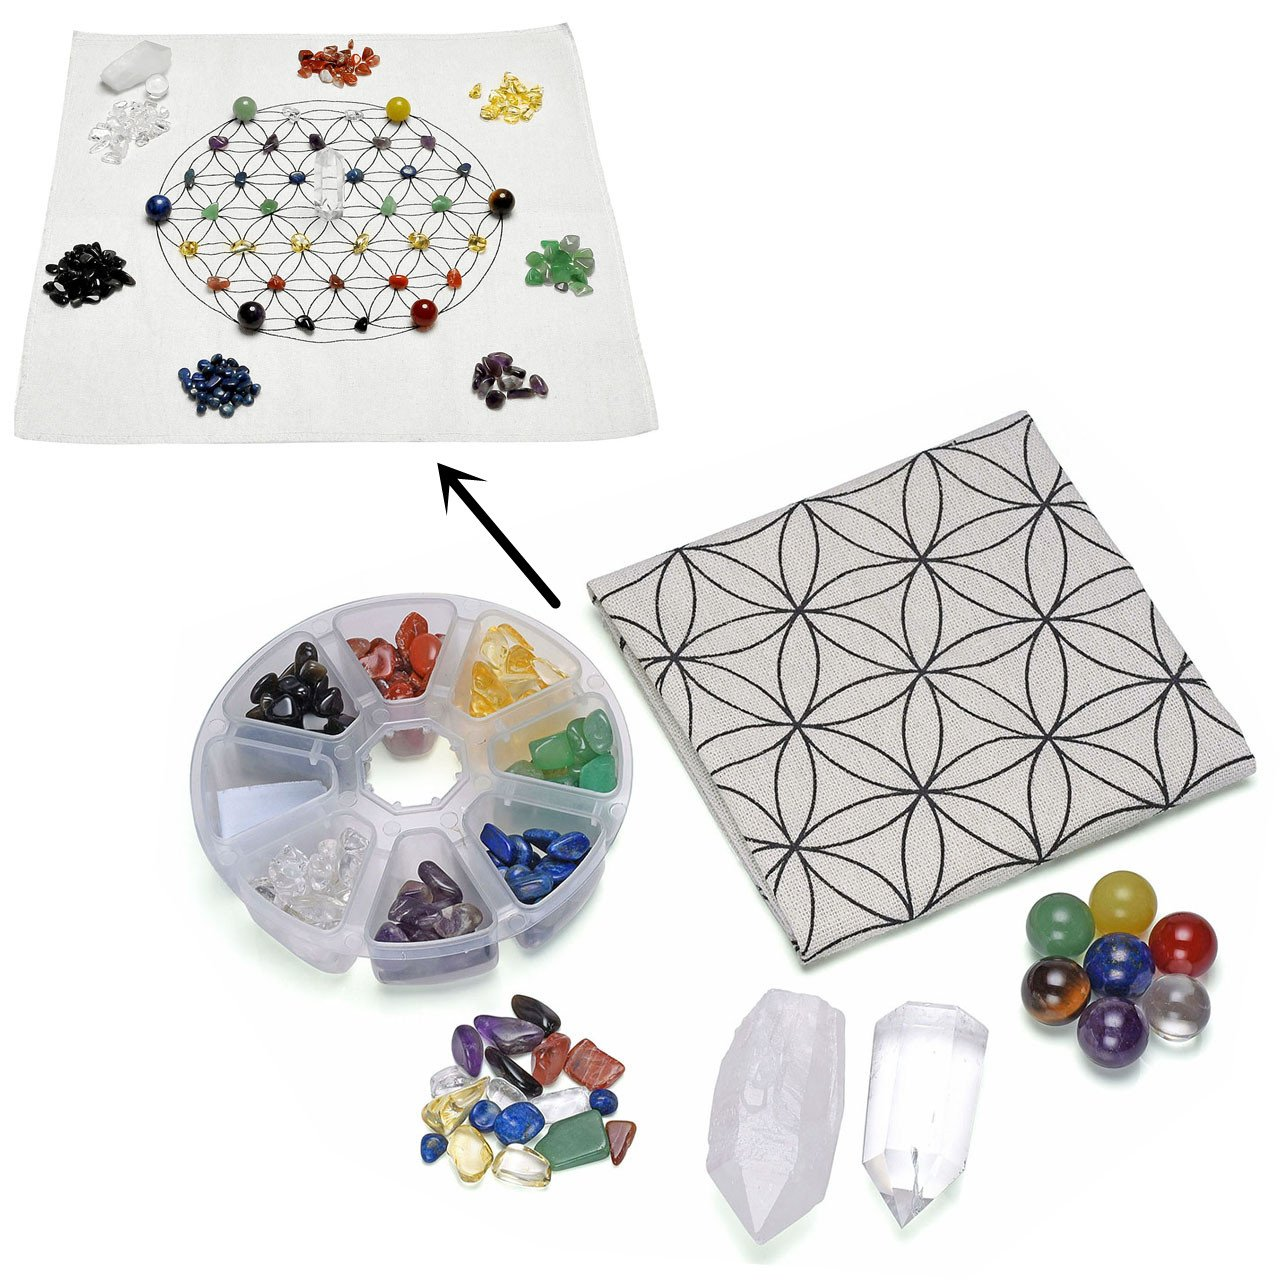 Top Plaza 7 Chakra Healing Crystal Grids Kit/Lot of 7 Chakra Round Beads, Assorted Chip Stones, Clear Quartz Crystal Wands Points Sticks, Flower of Life Sacred Geometry Crystal Grids Altar Cloth